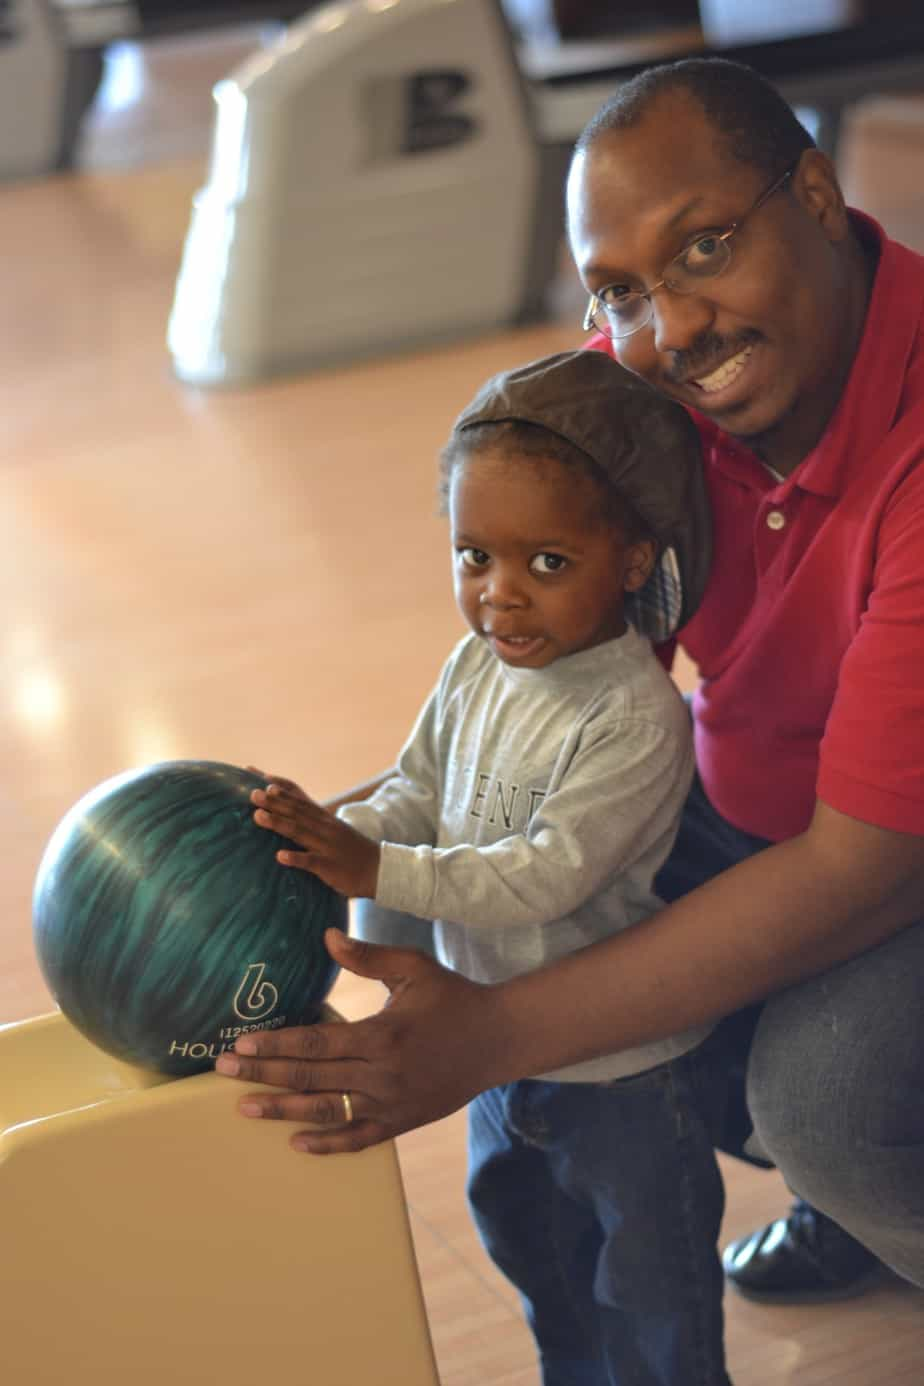 Pinstripes offers great bonding opportunities for parents and children.